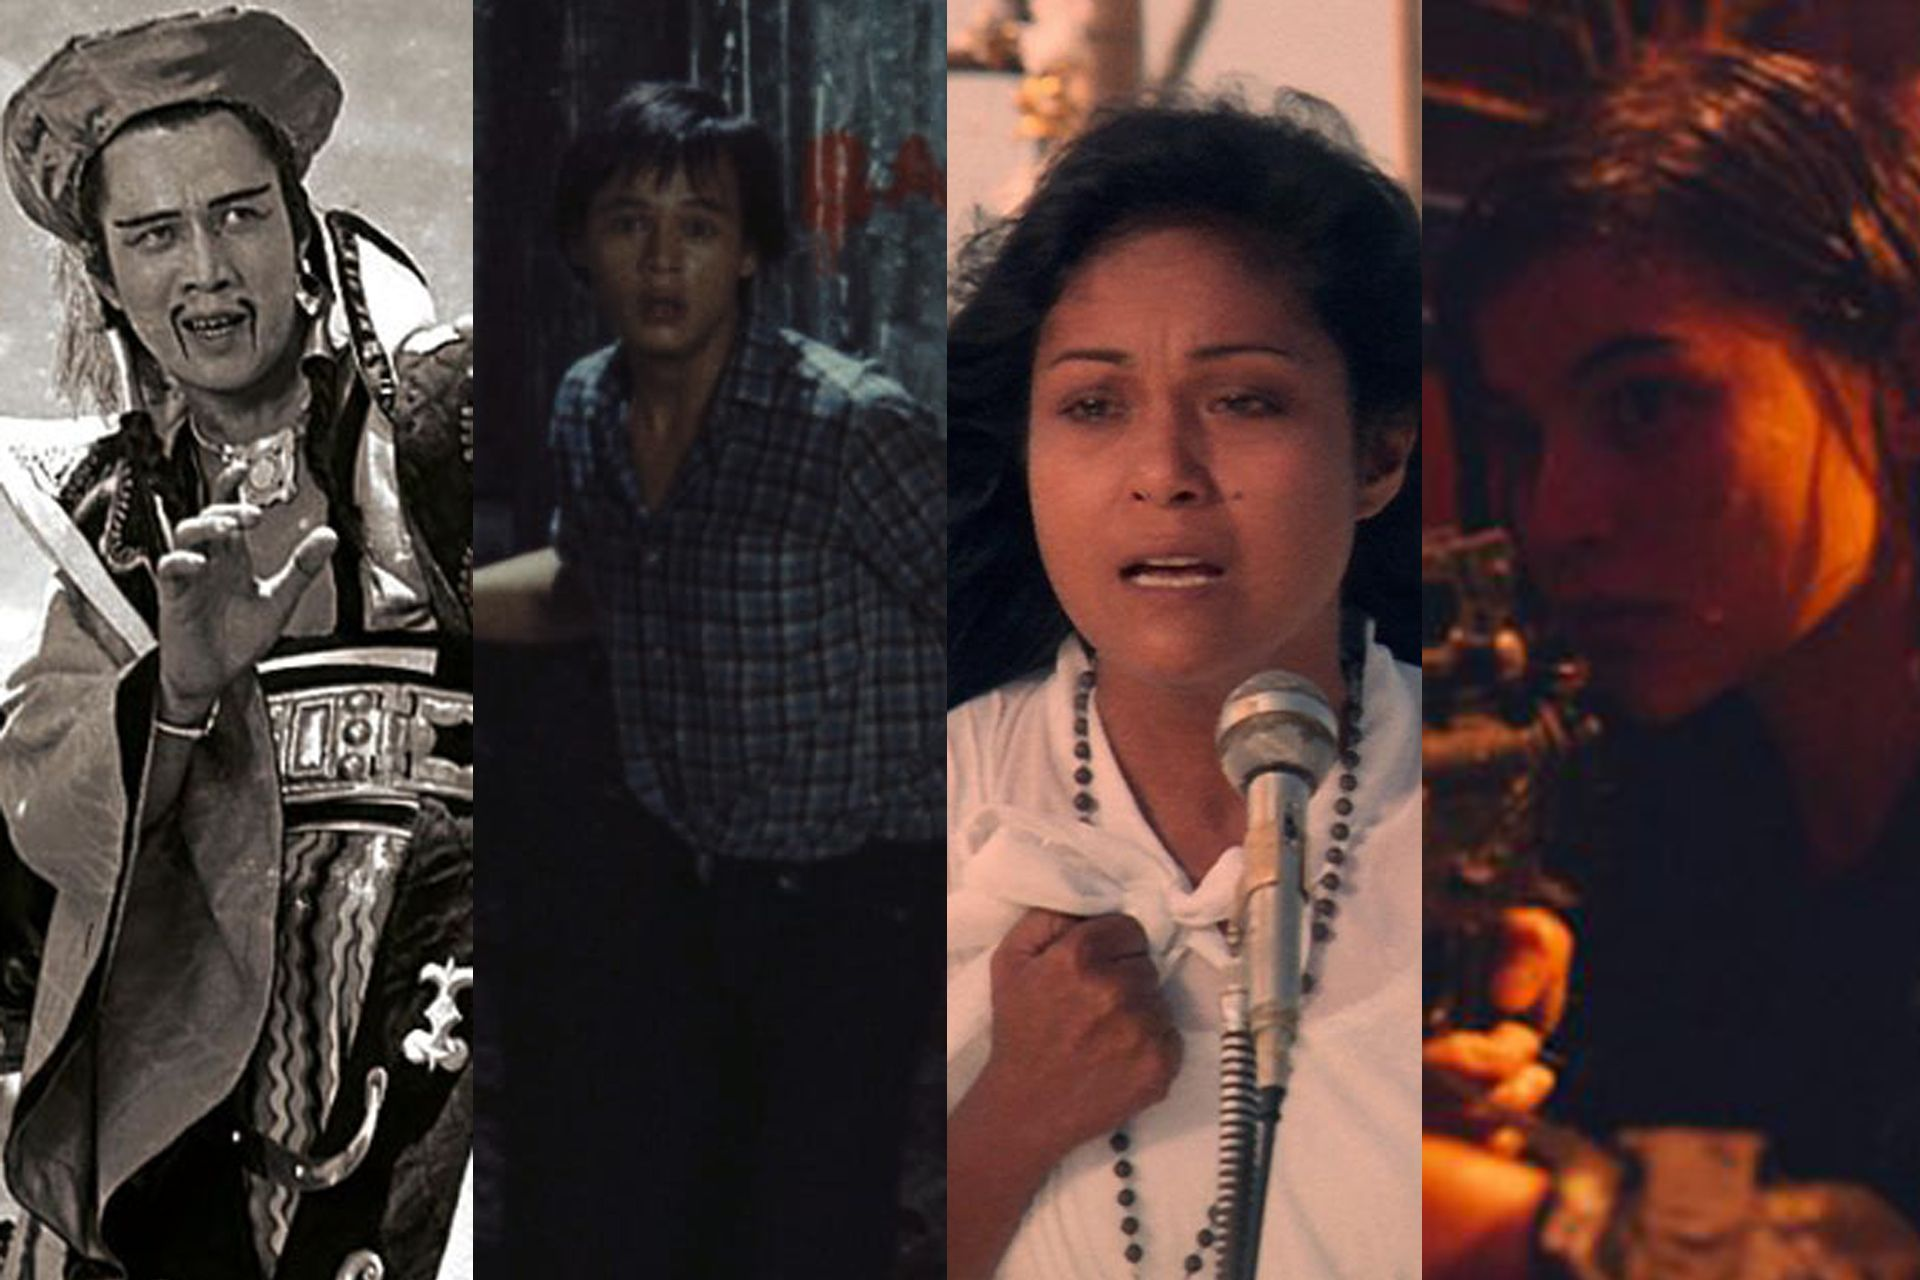 Cine Sandaan: 10 Iconic Films That Shaped Philippine Cinema